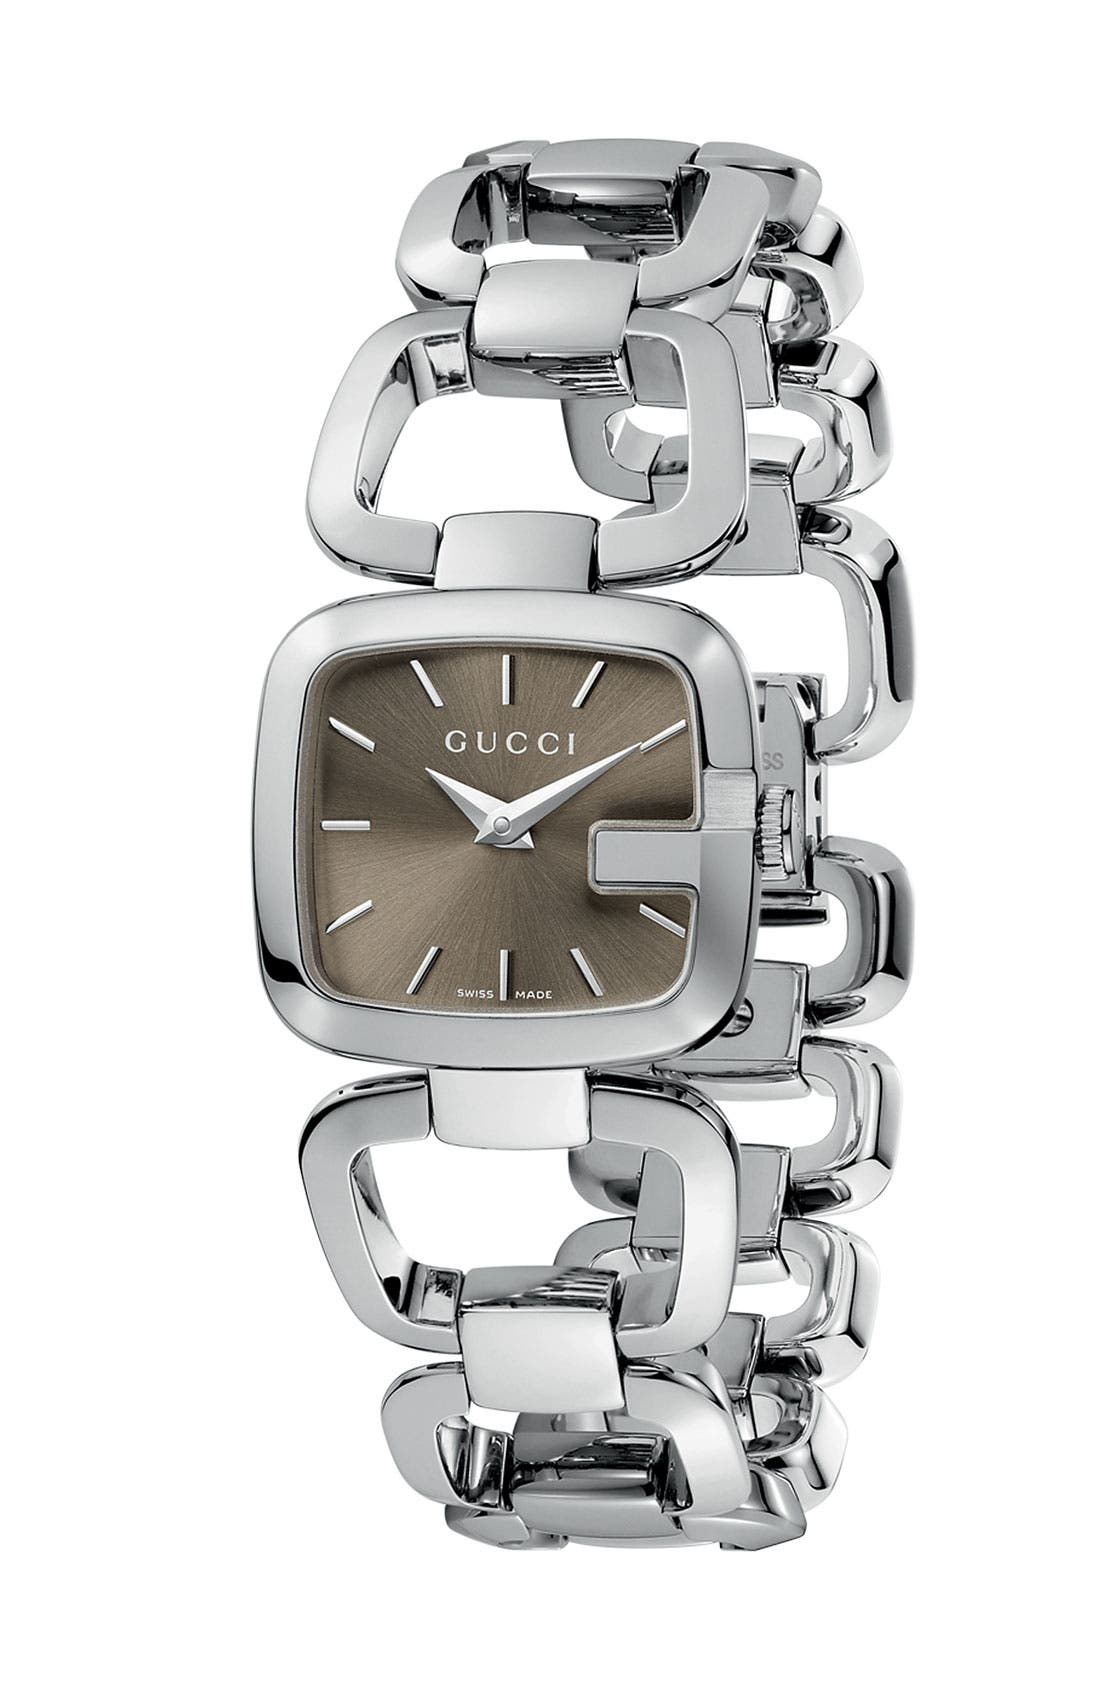 Main Image - Gucci Stainless Steel Diamond Watch, 24mm x 22mm